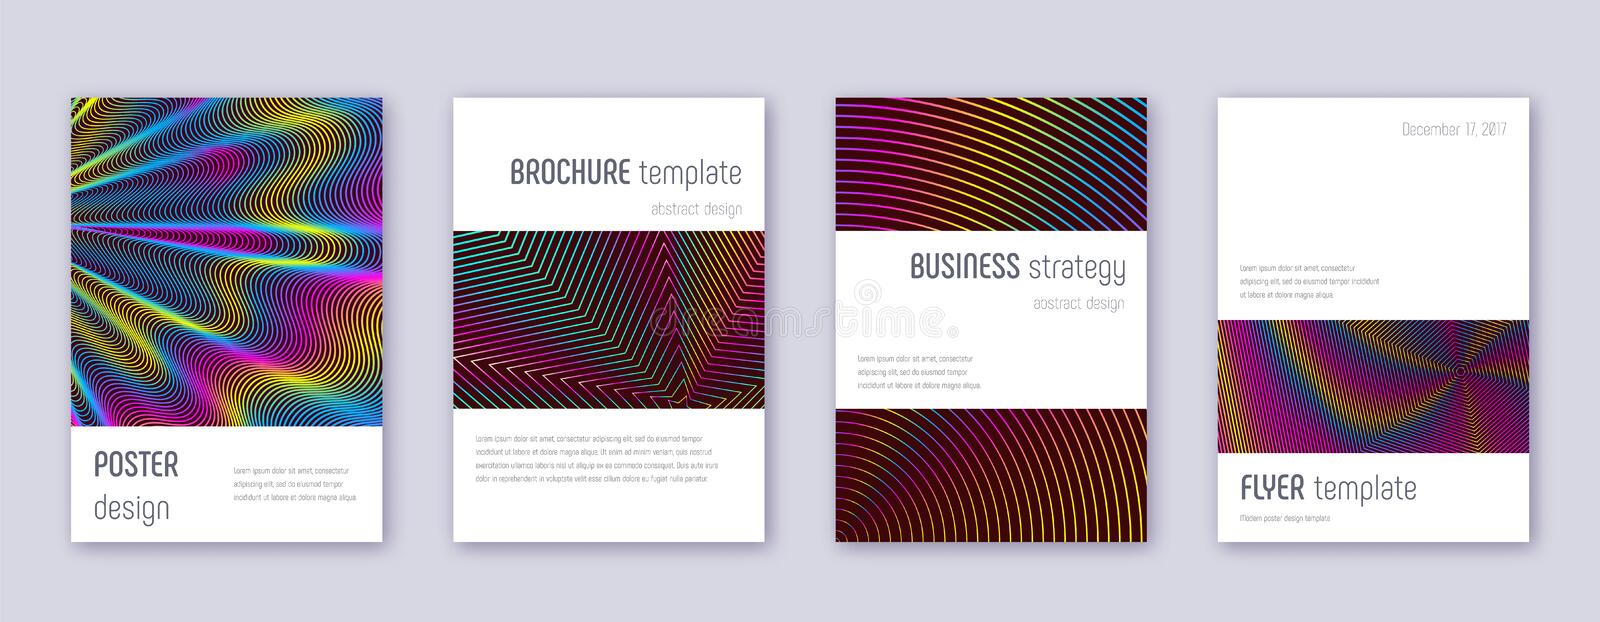 Minimalistic brochure design template set. Rainbow. Abstract lines on wine red background. Authentic brochure design. Amazing catalog, poster, book template etc vector illustration